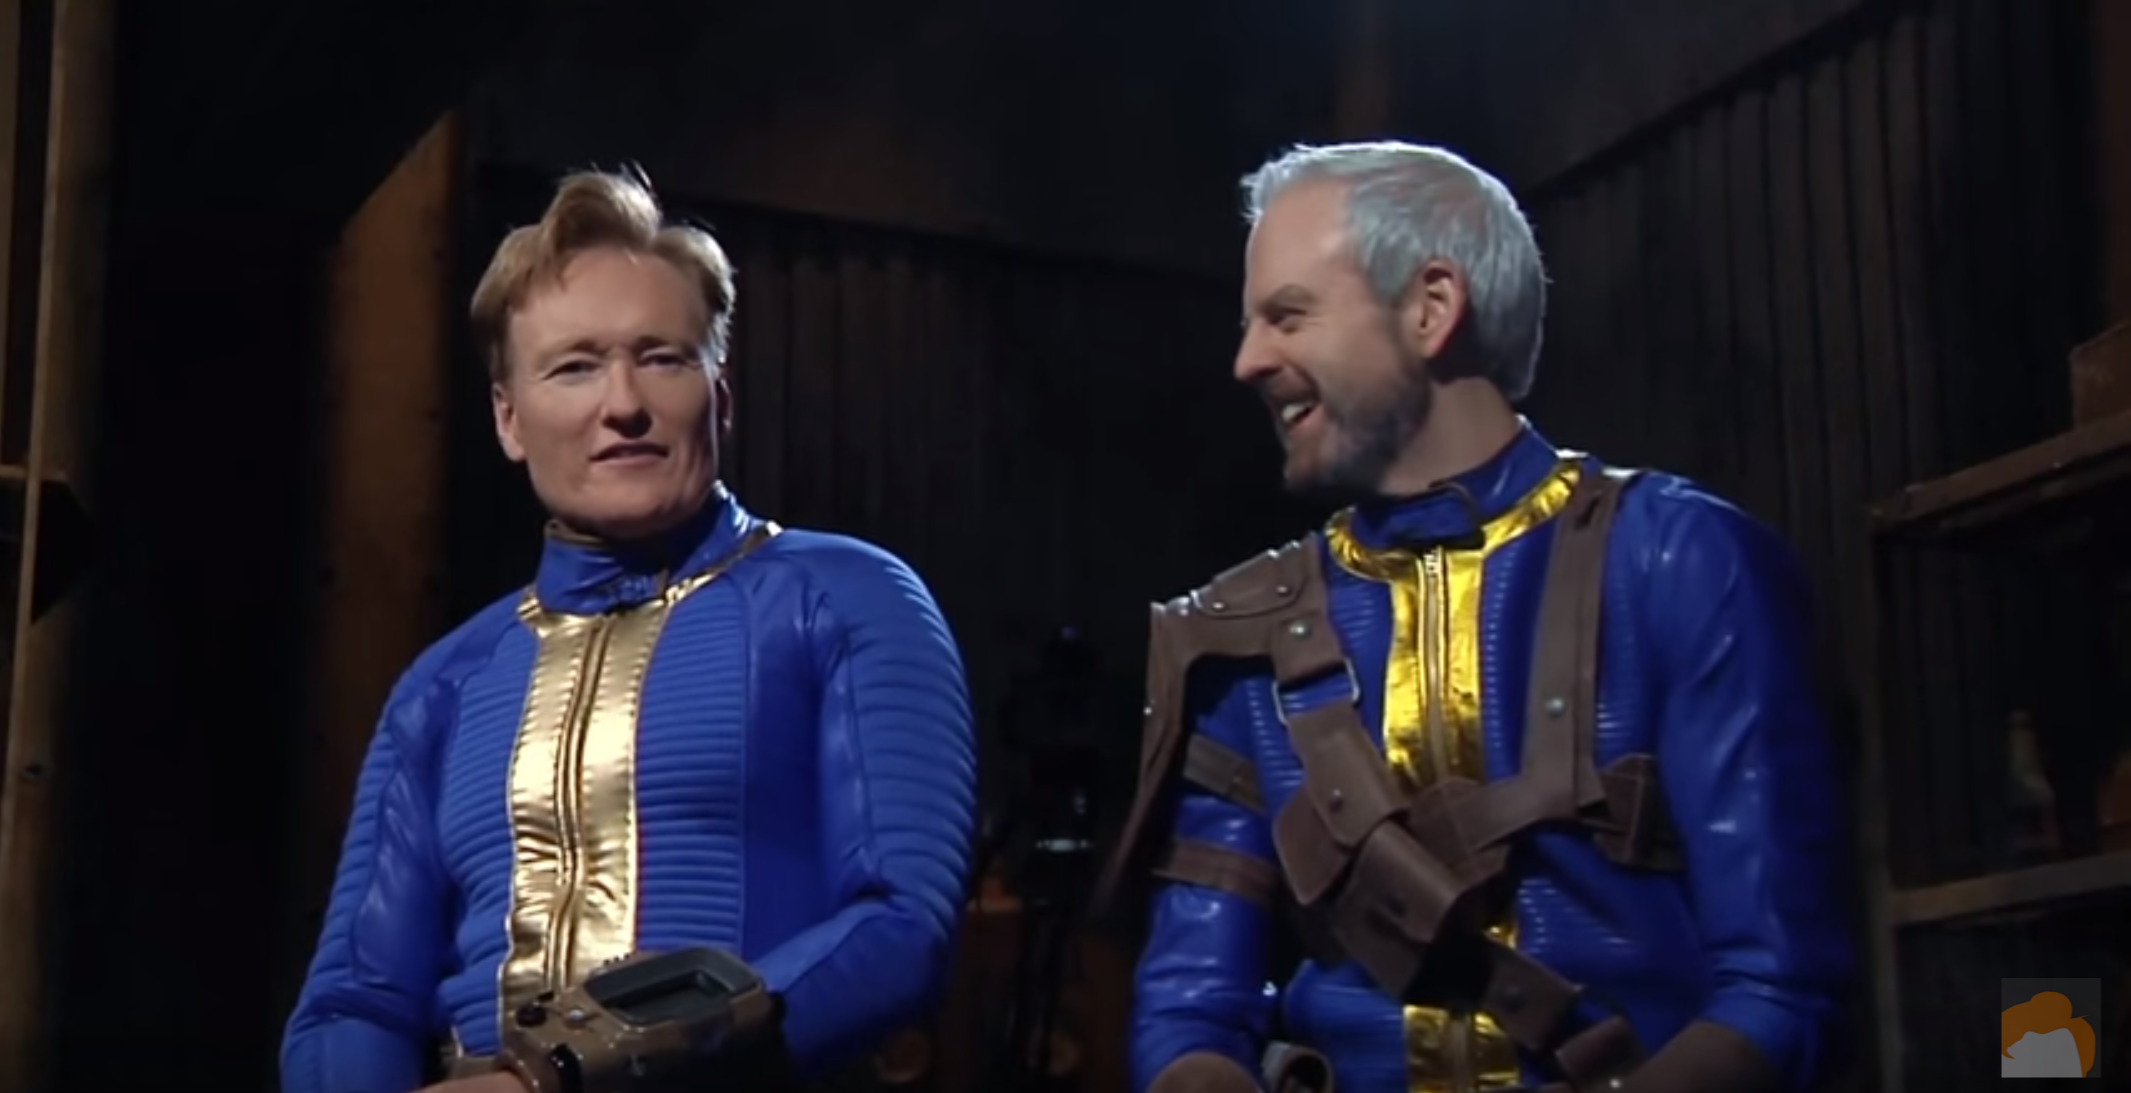 Watch Conan Play Fallout 4 In Clueless Gamer